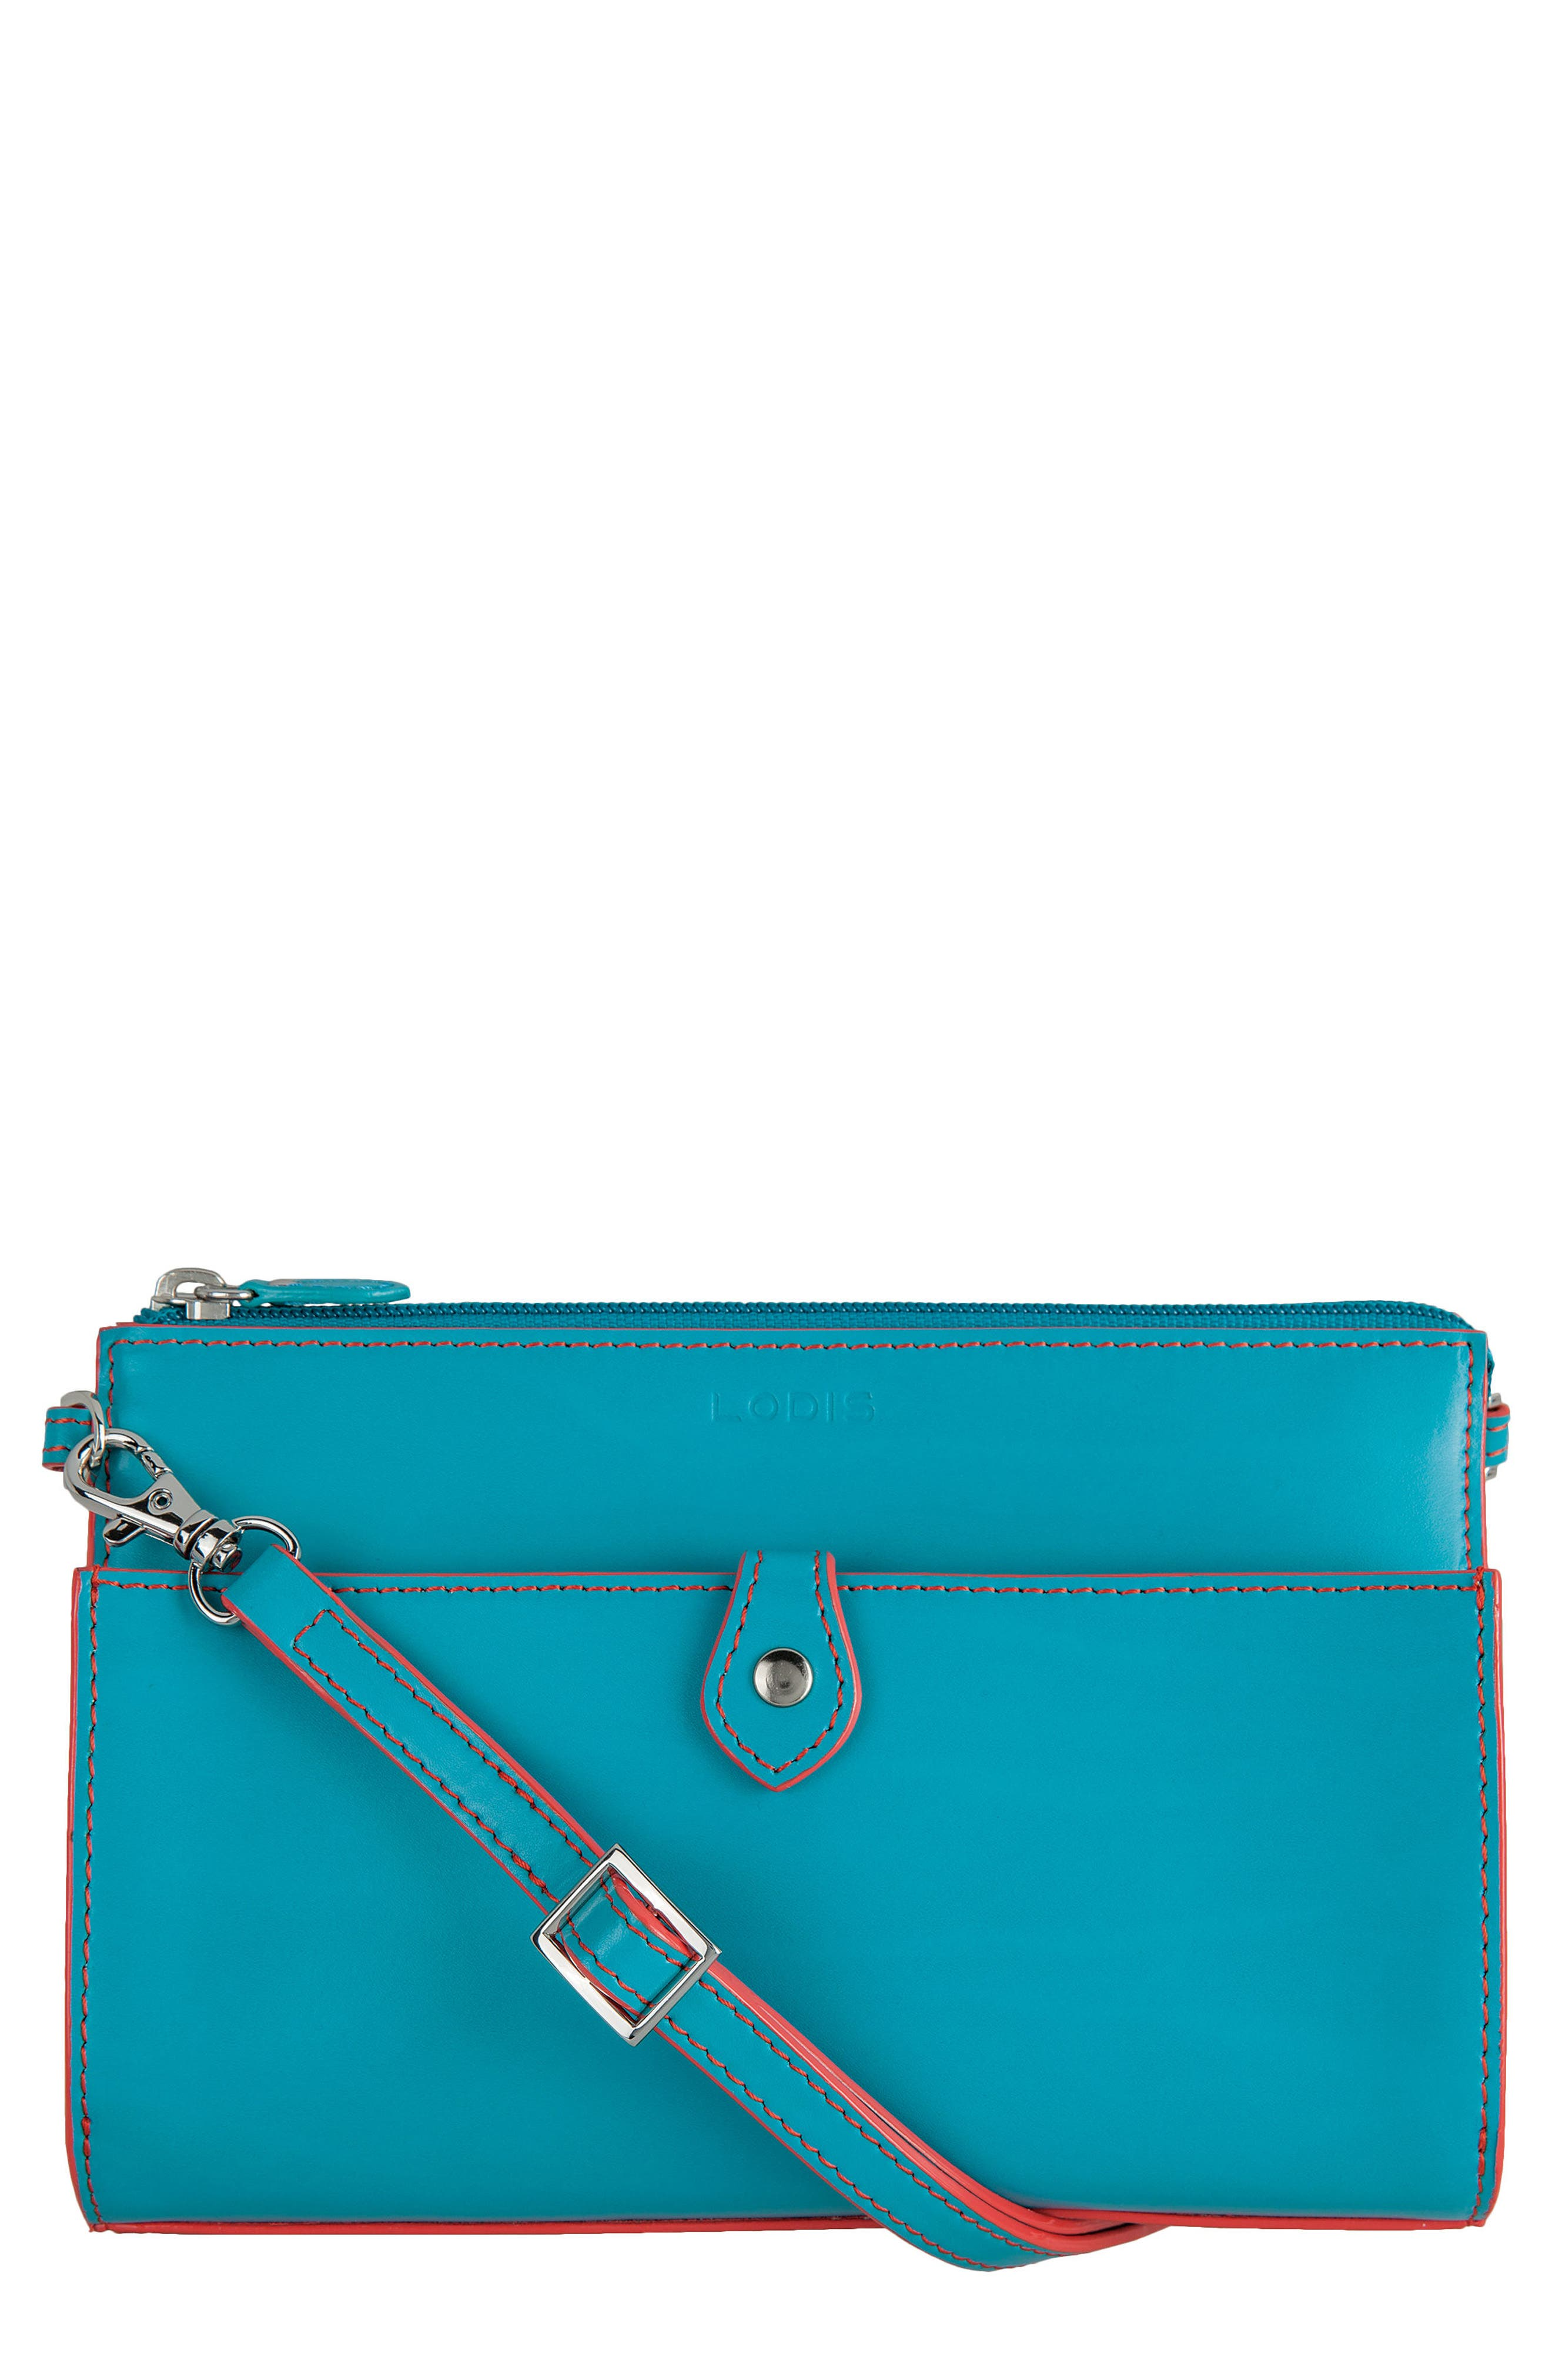 LODIS 'Audrey Collection - Vicky' Convertible Crossbody Bag